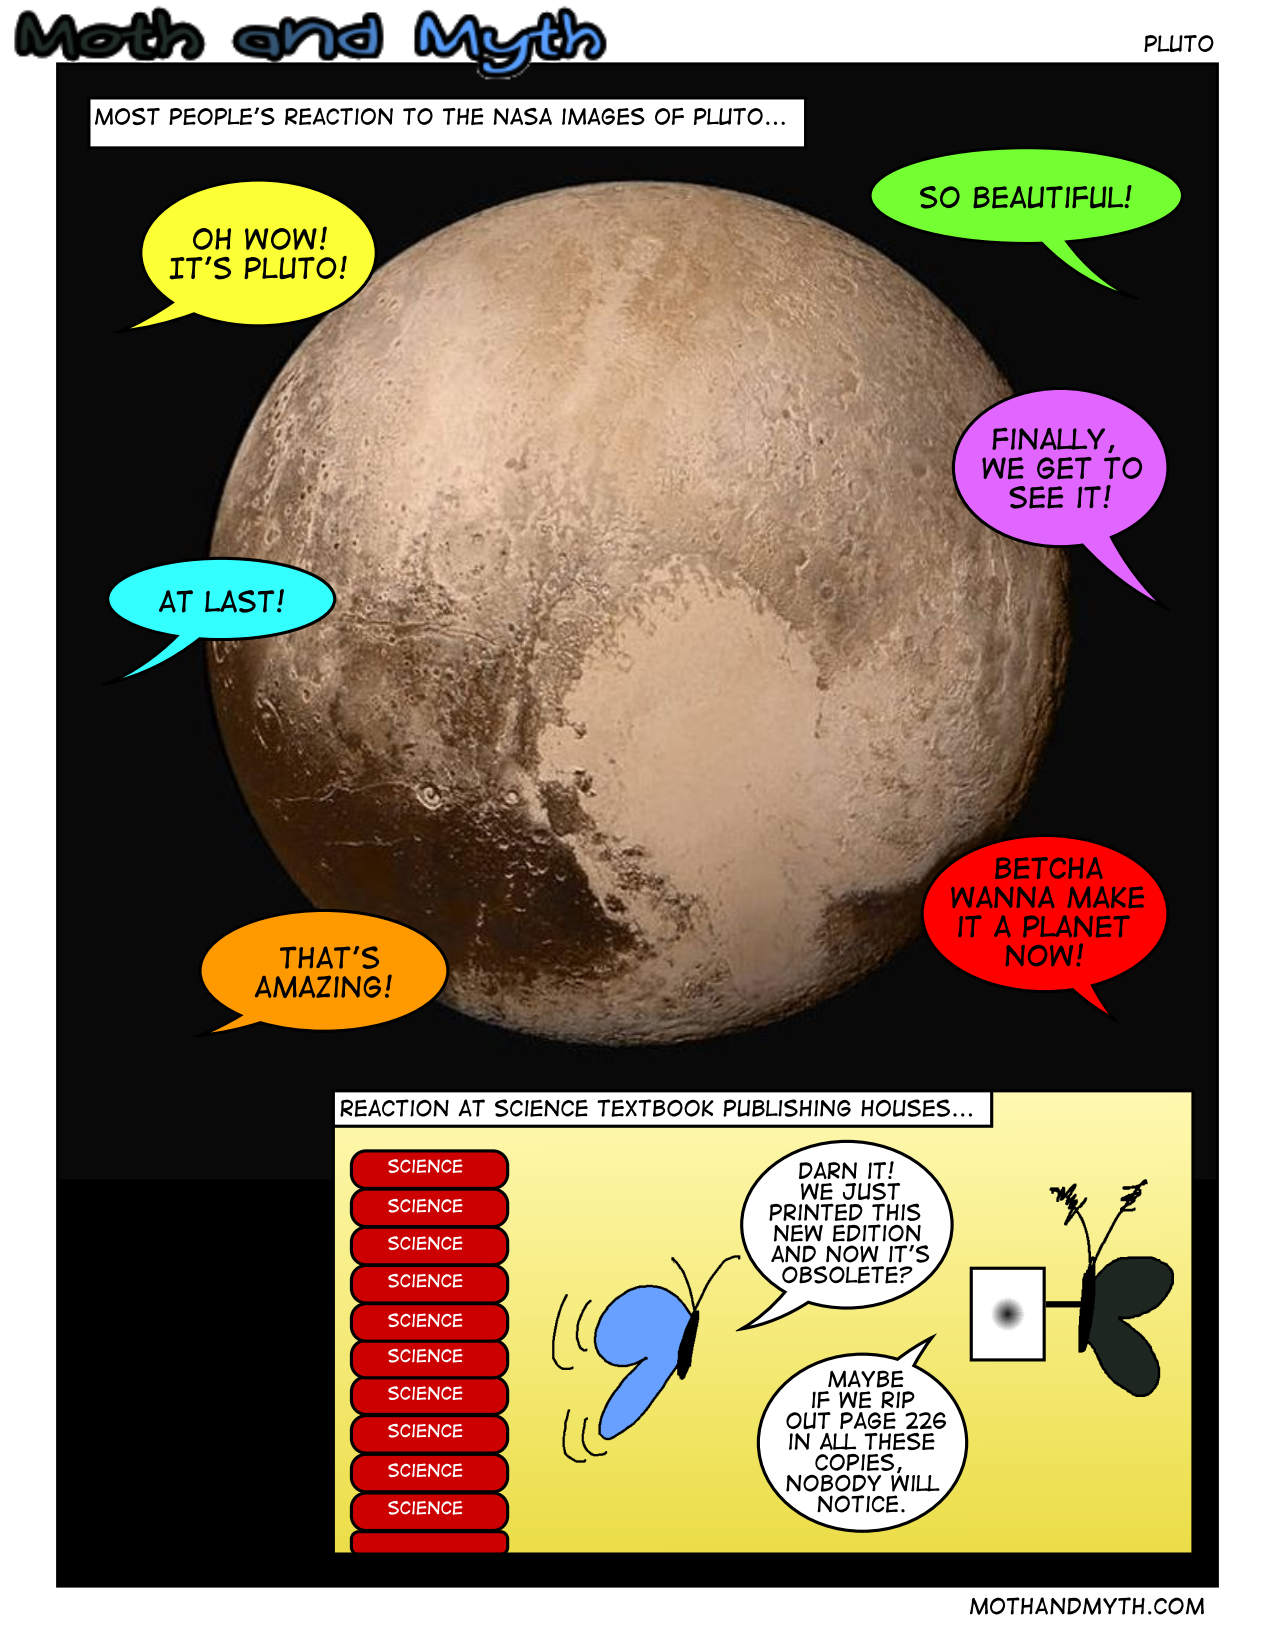 """Maybe if we just pretend that Pluto isn't a planet, we can omit it without anyone noticing..."""